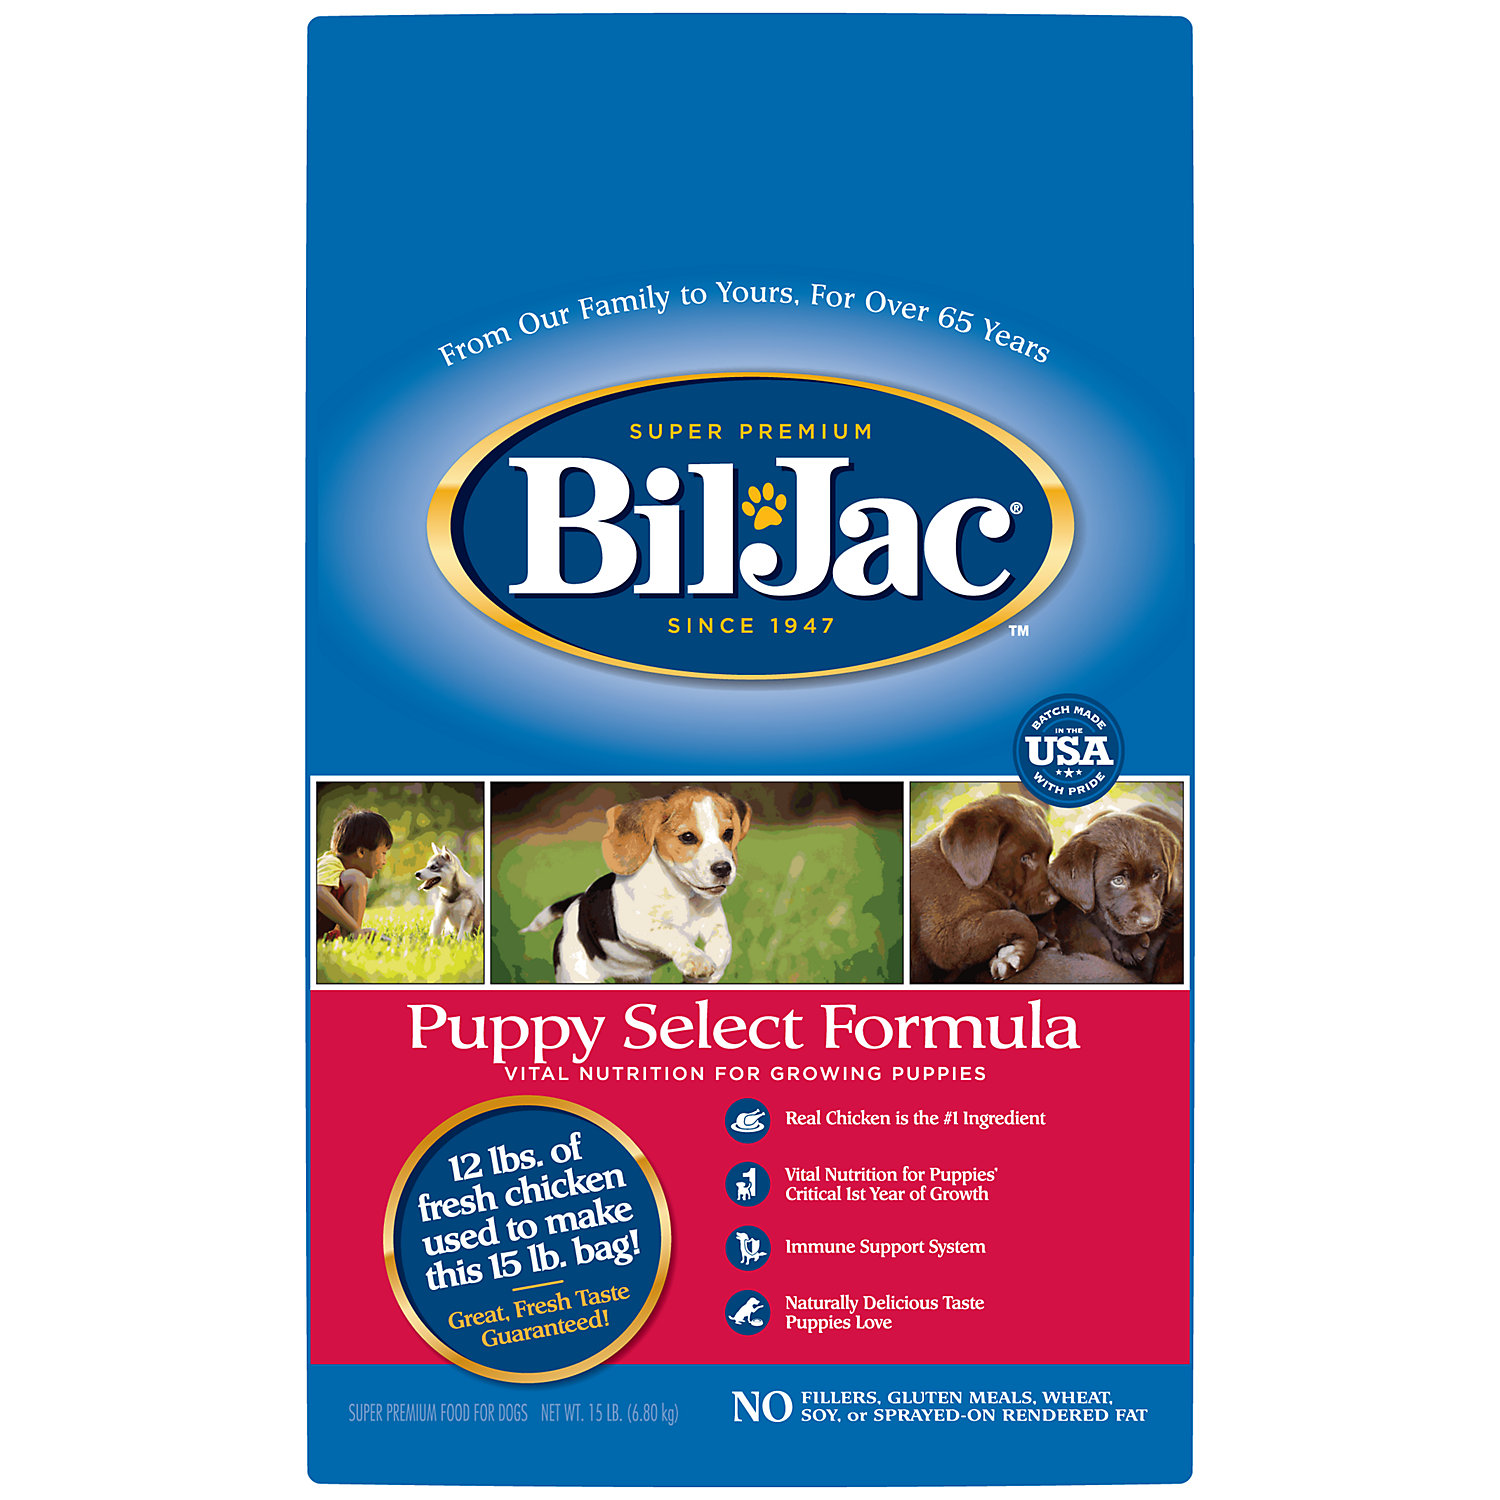 Bil-jac Puppy Select Formula Puppy Food